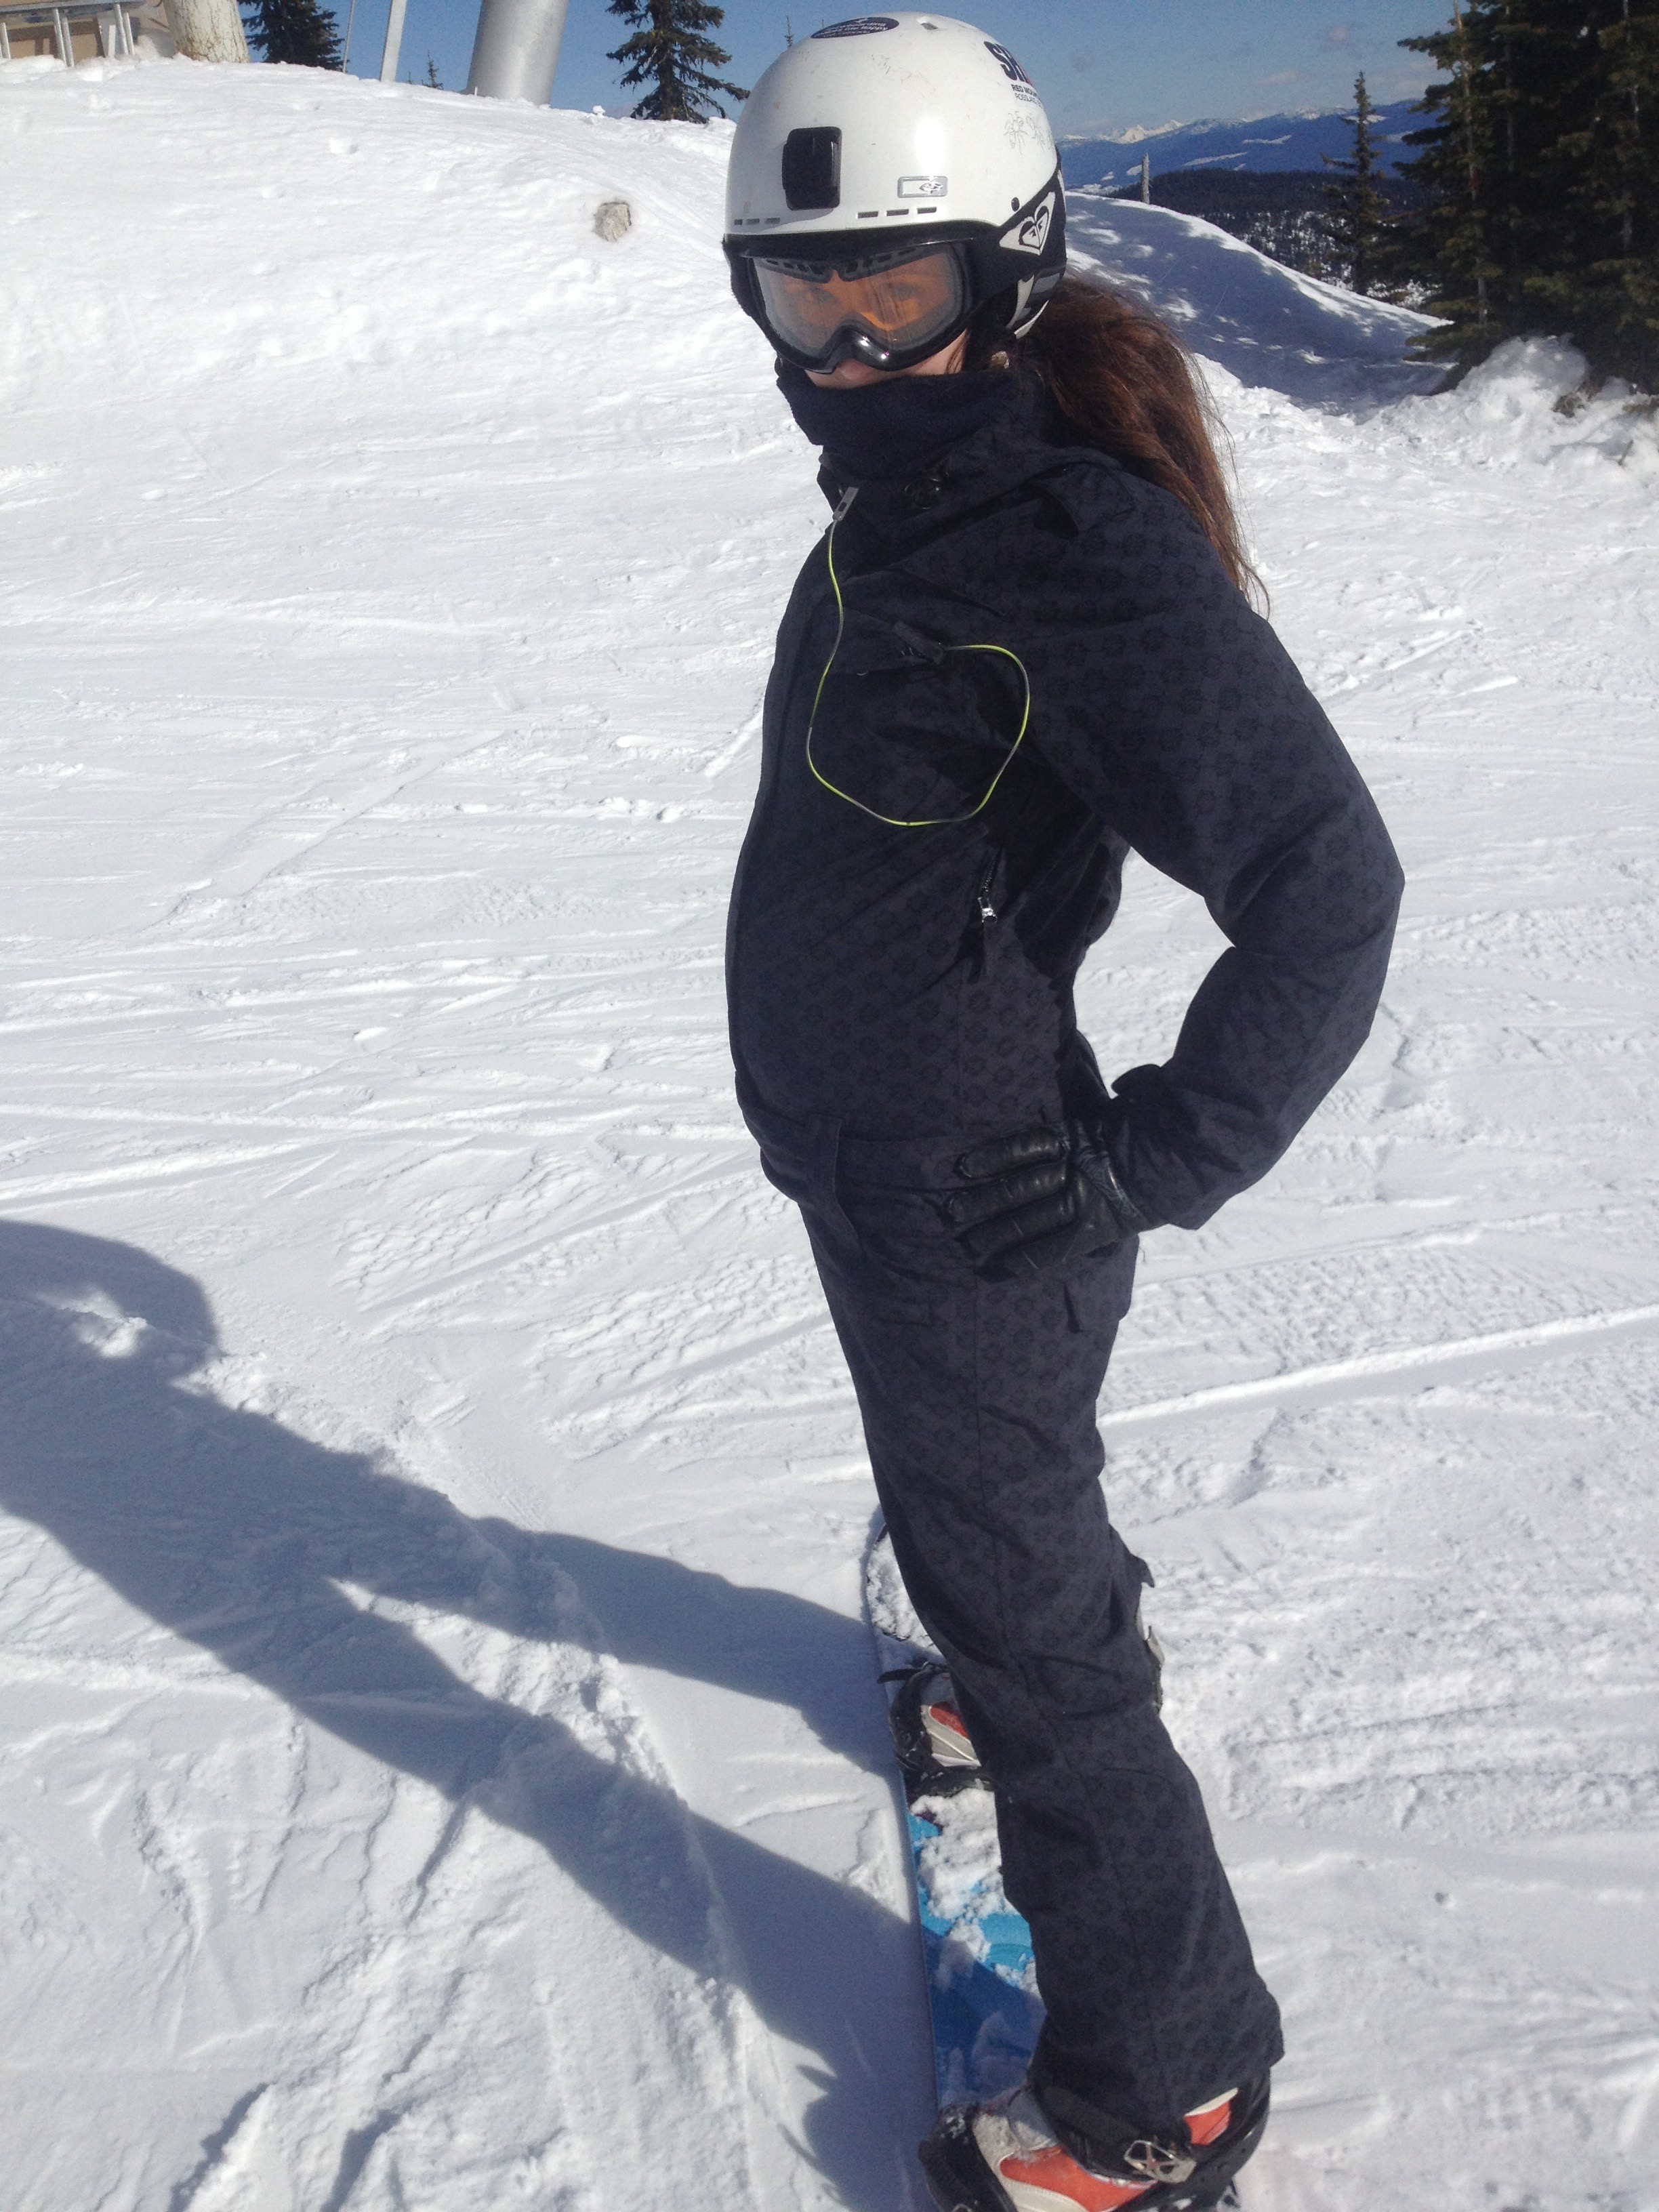 Snowboarding at 20 Weeks Pregnant - I had to start wearing my onesie because my snow pants didn't fit anymore.